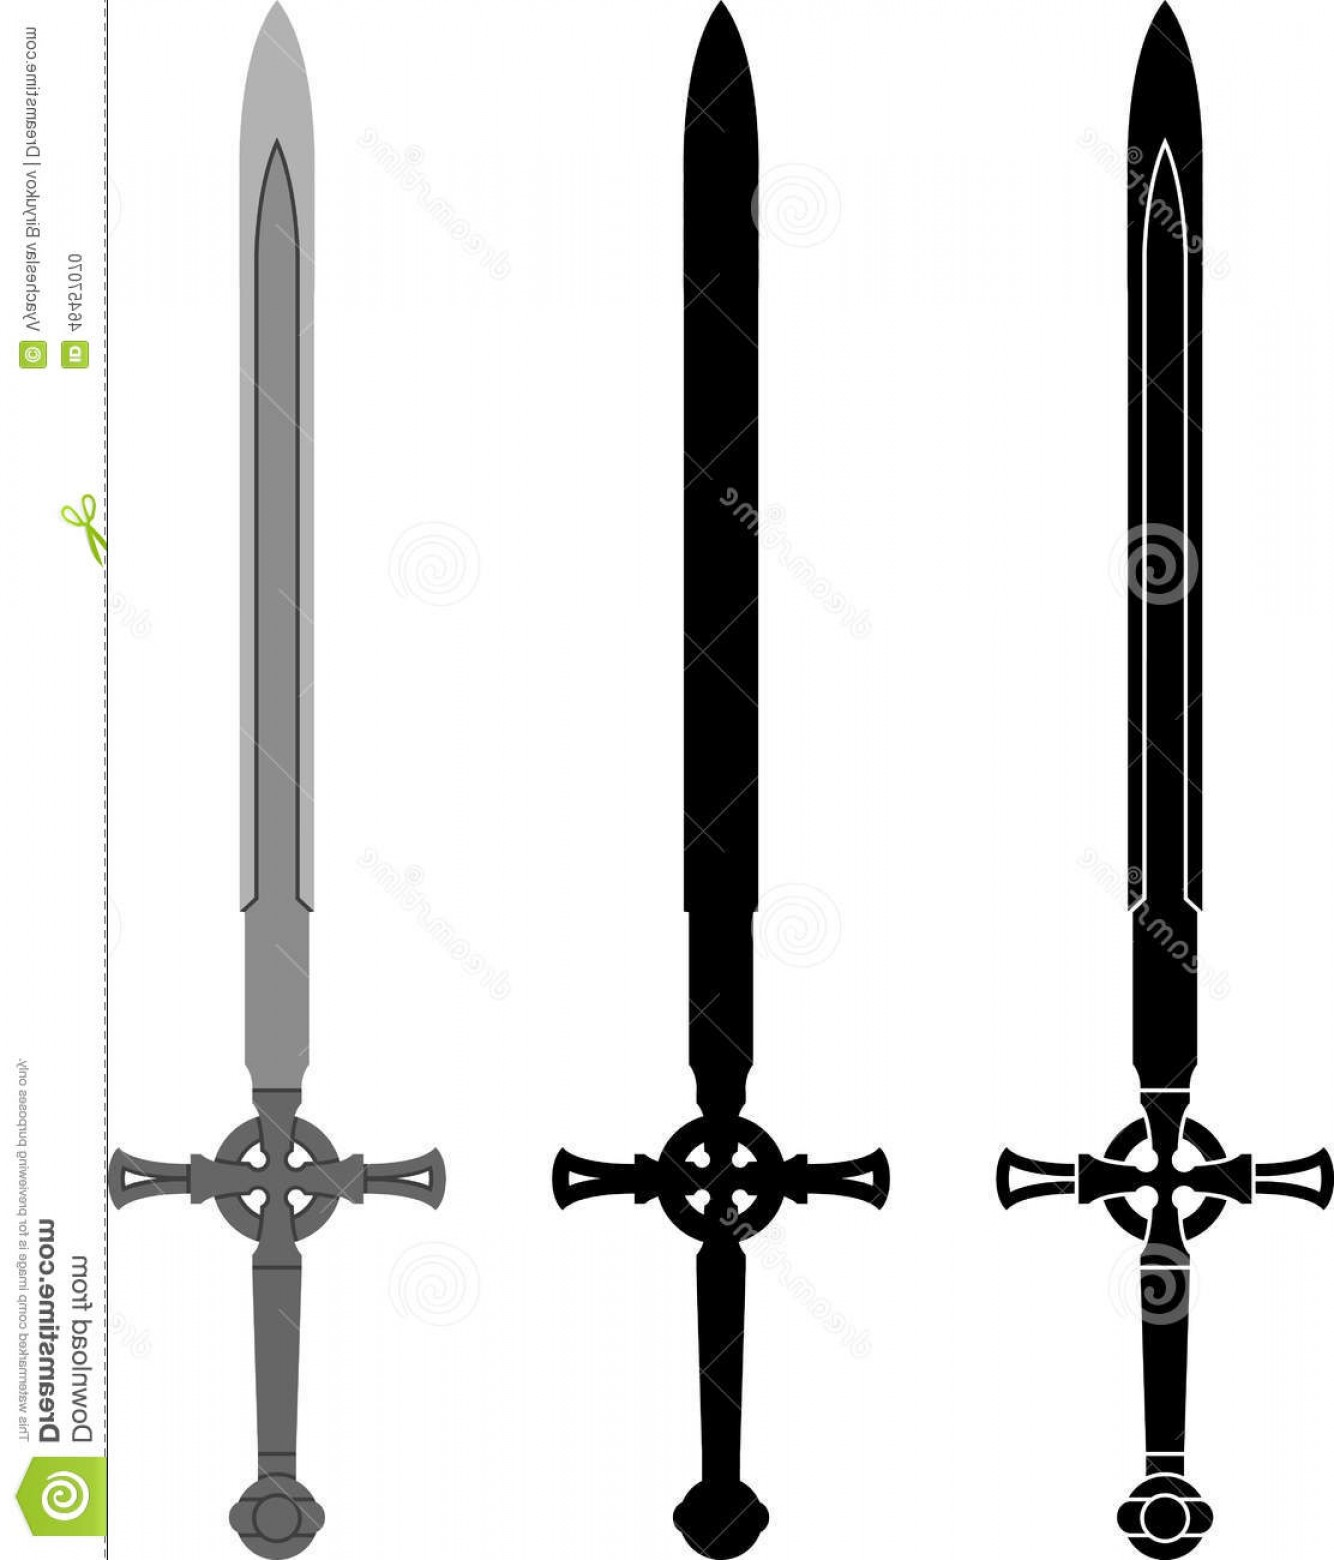 Game Of Thrones Sword Silhouette Vector: Stock Illustration Medieval Sword First Variant Stencil Silhouette Vector Illustration Image